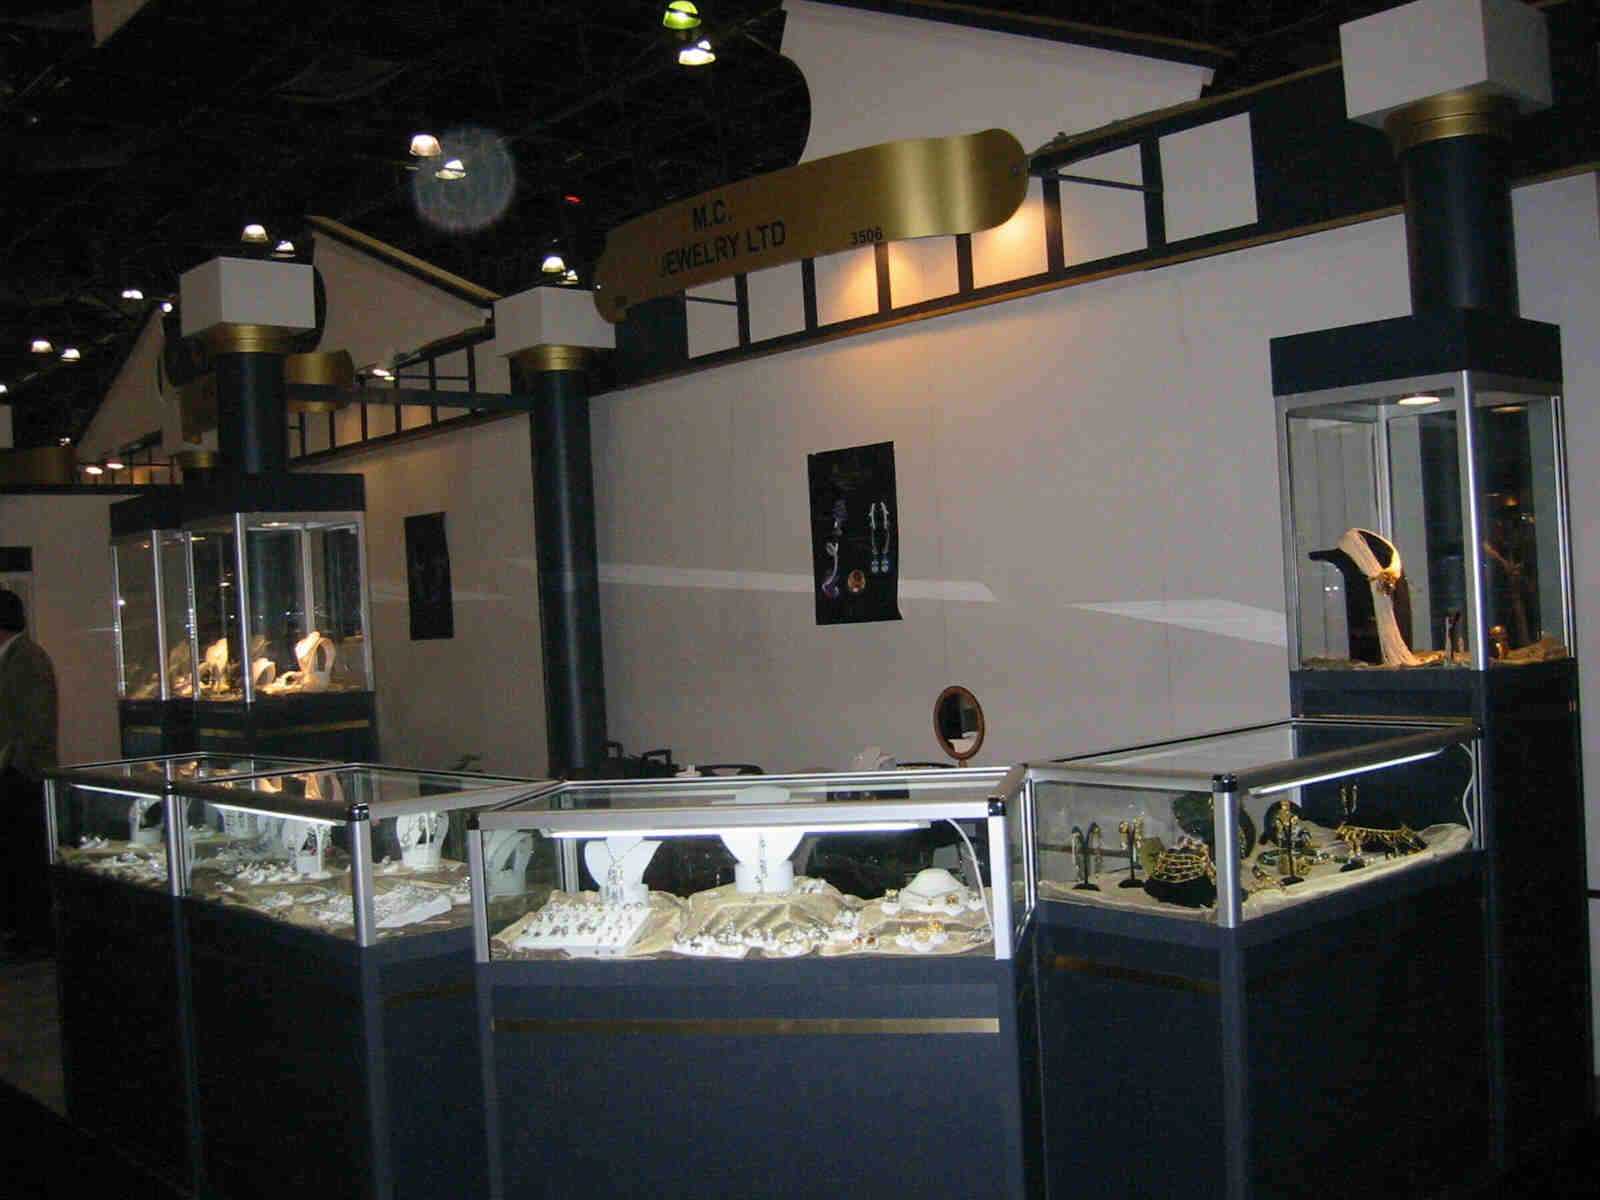 An image from Cypriot jewellers exhibit, very classic old school look. Jewels displayed in glass boxes places on dark blue stands.